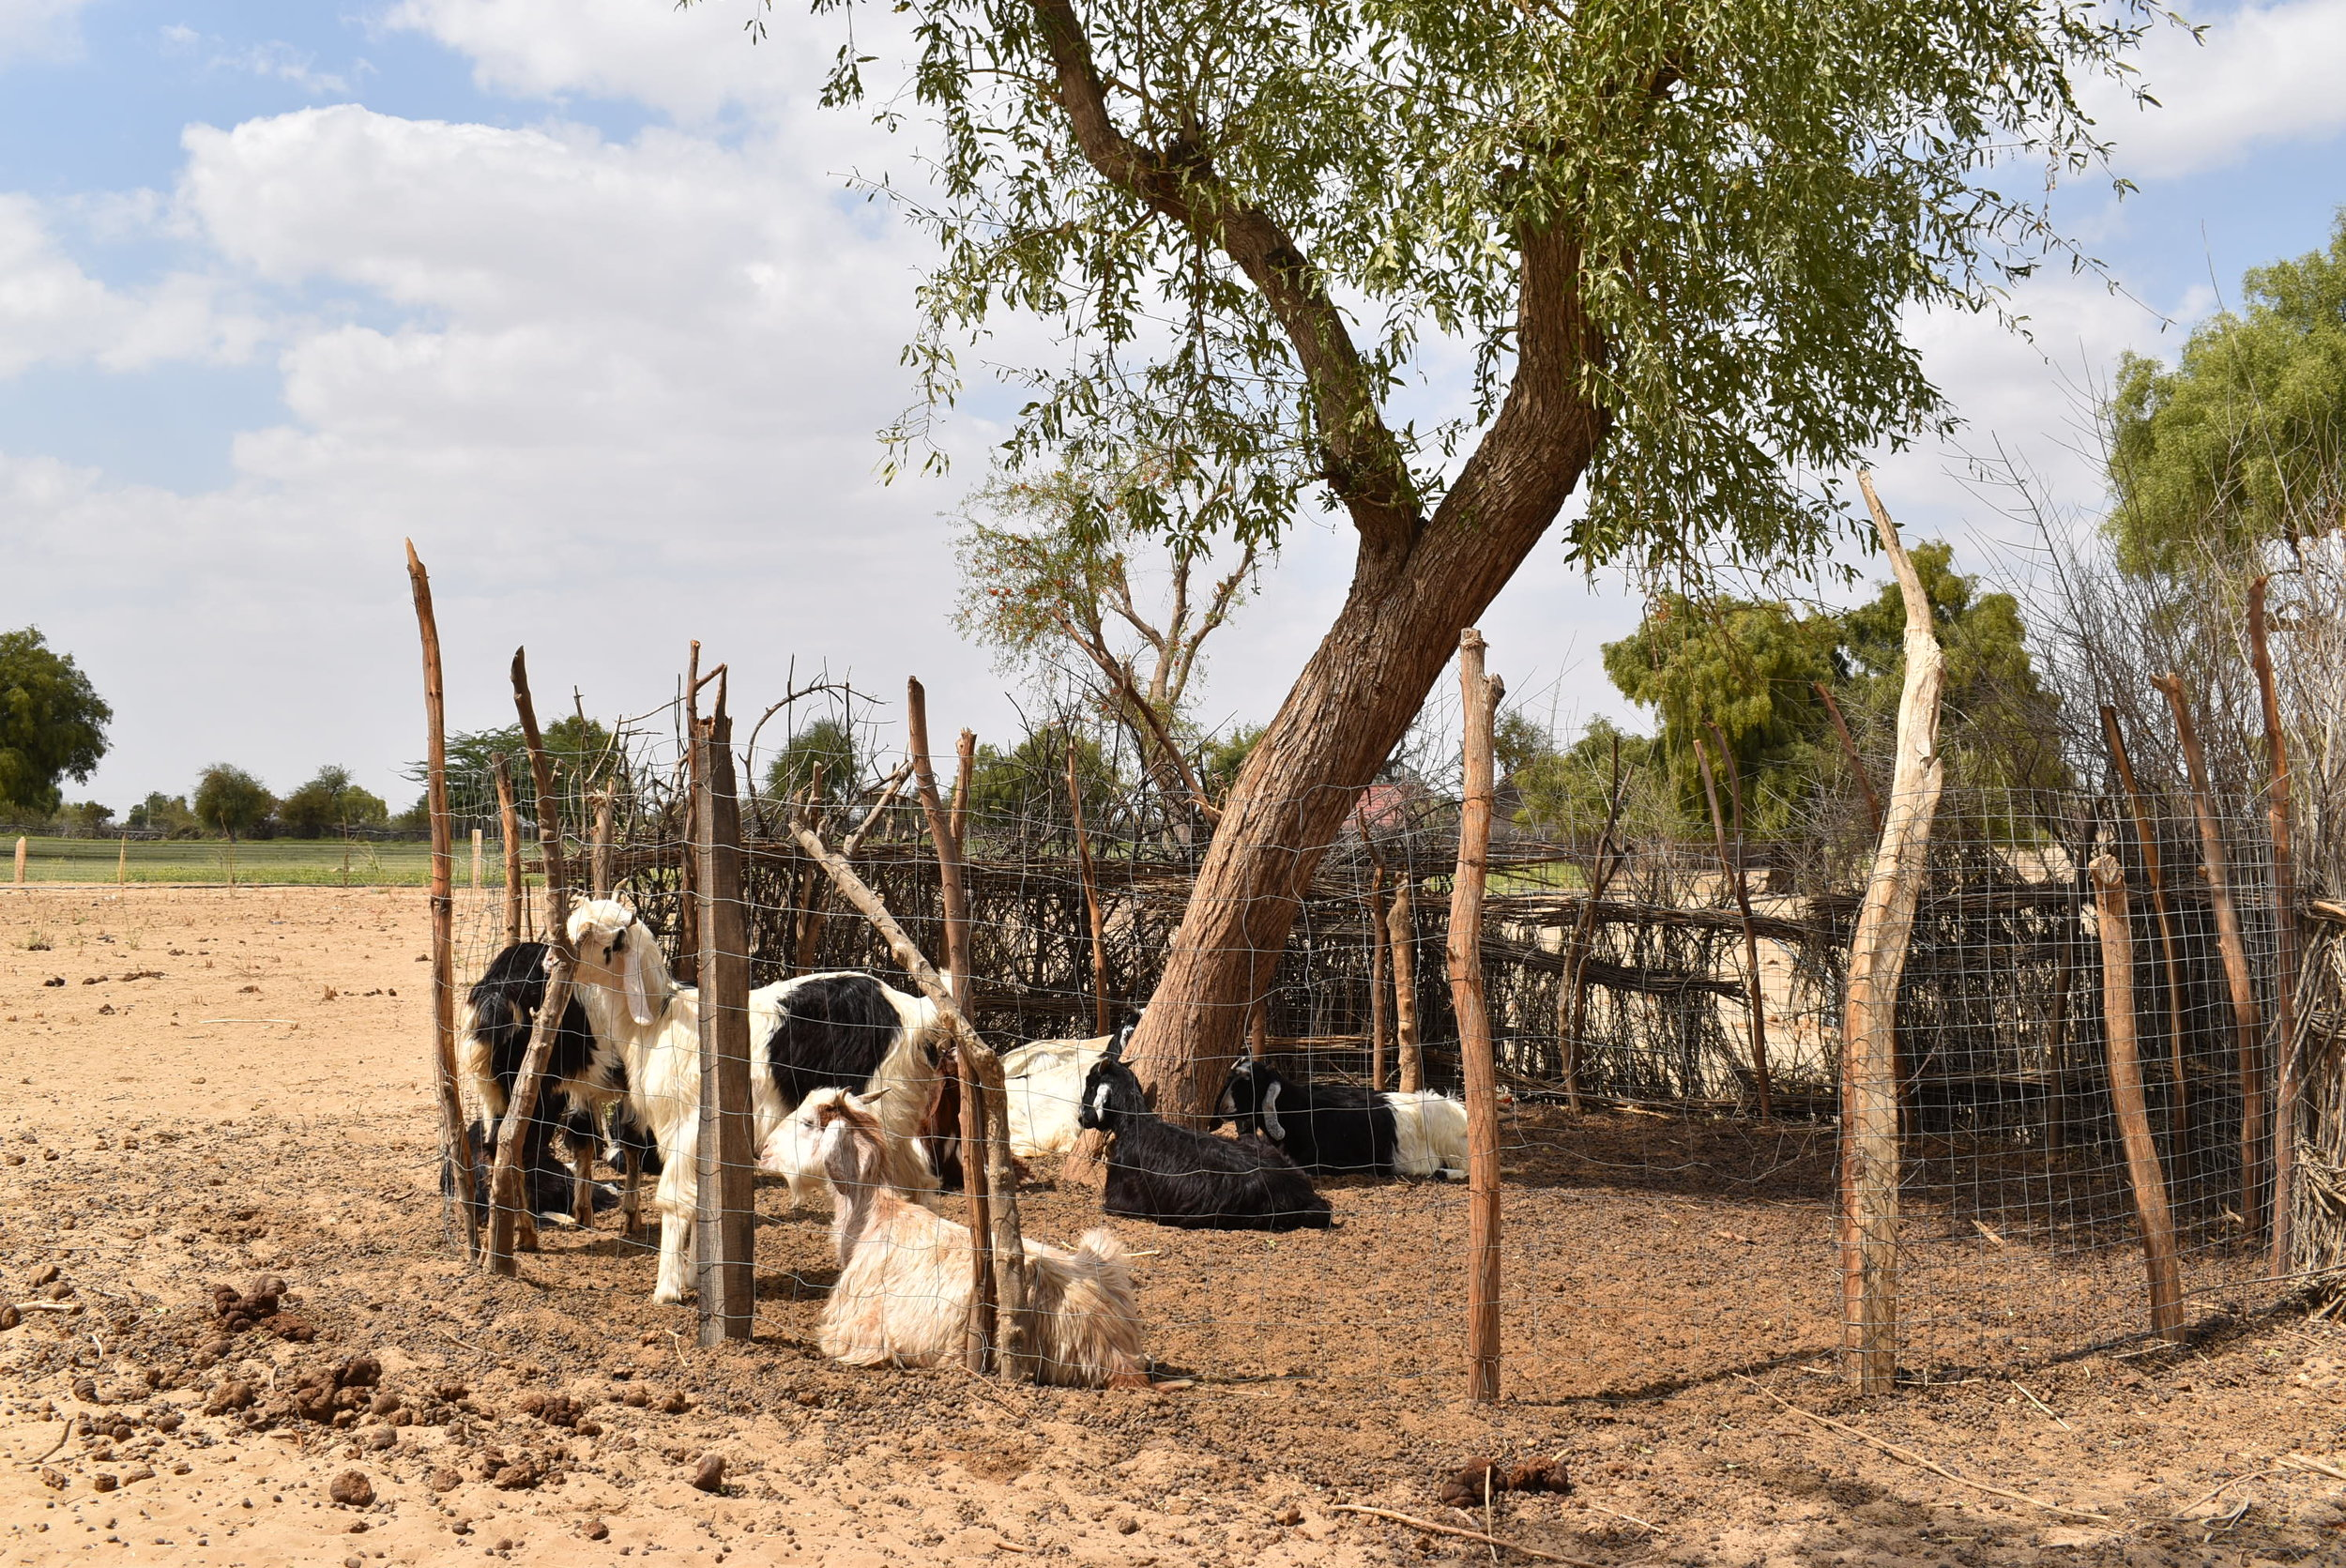 Livestock is an important livelihood for farmers and complements the production of cumin. The goat's dung provides organic material to the sandy soil. Both activities are the main source of income for rural communities in the Barmer district, in Rajasthan.